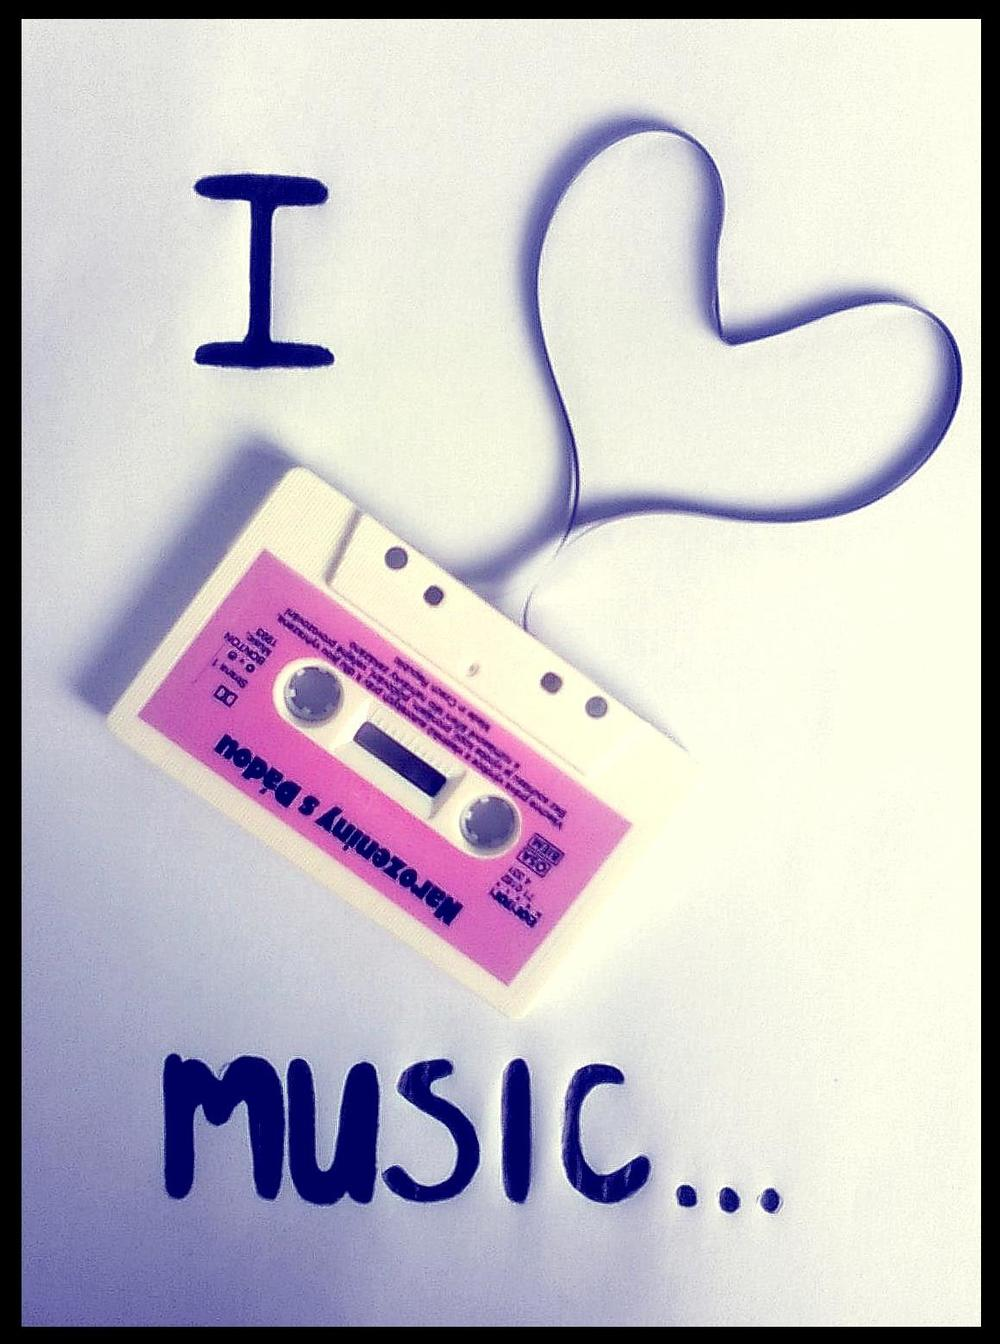 i-love-music-cassette-heart-pink